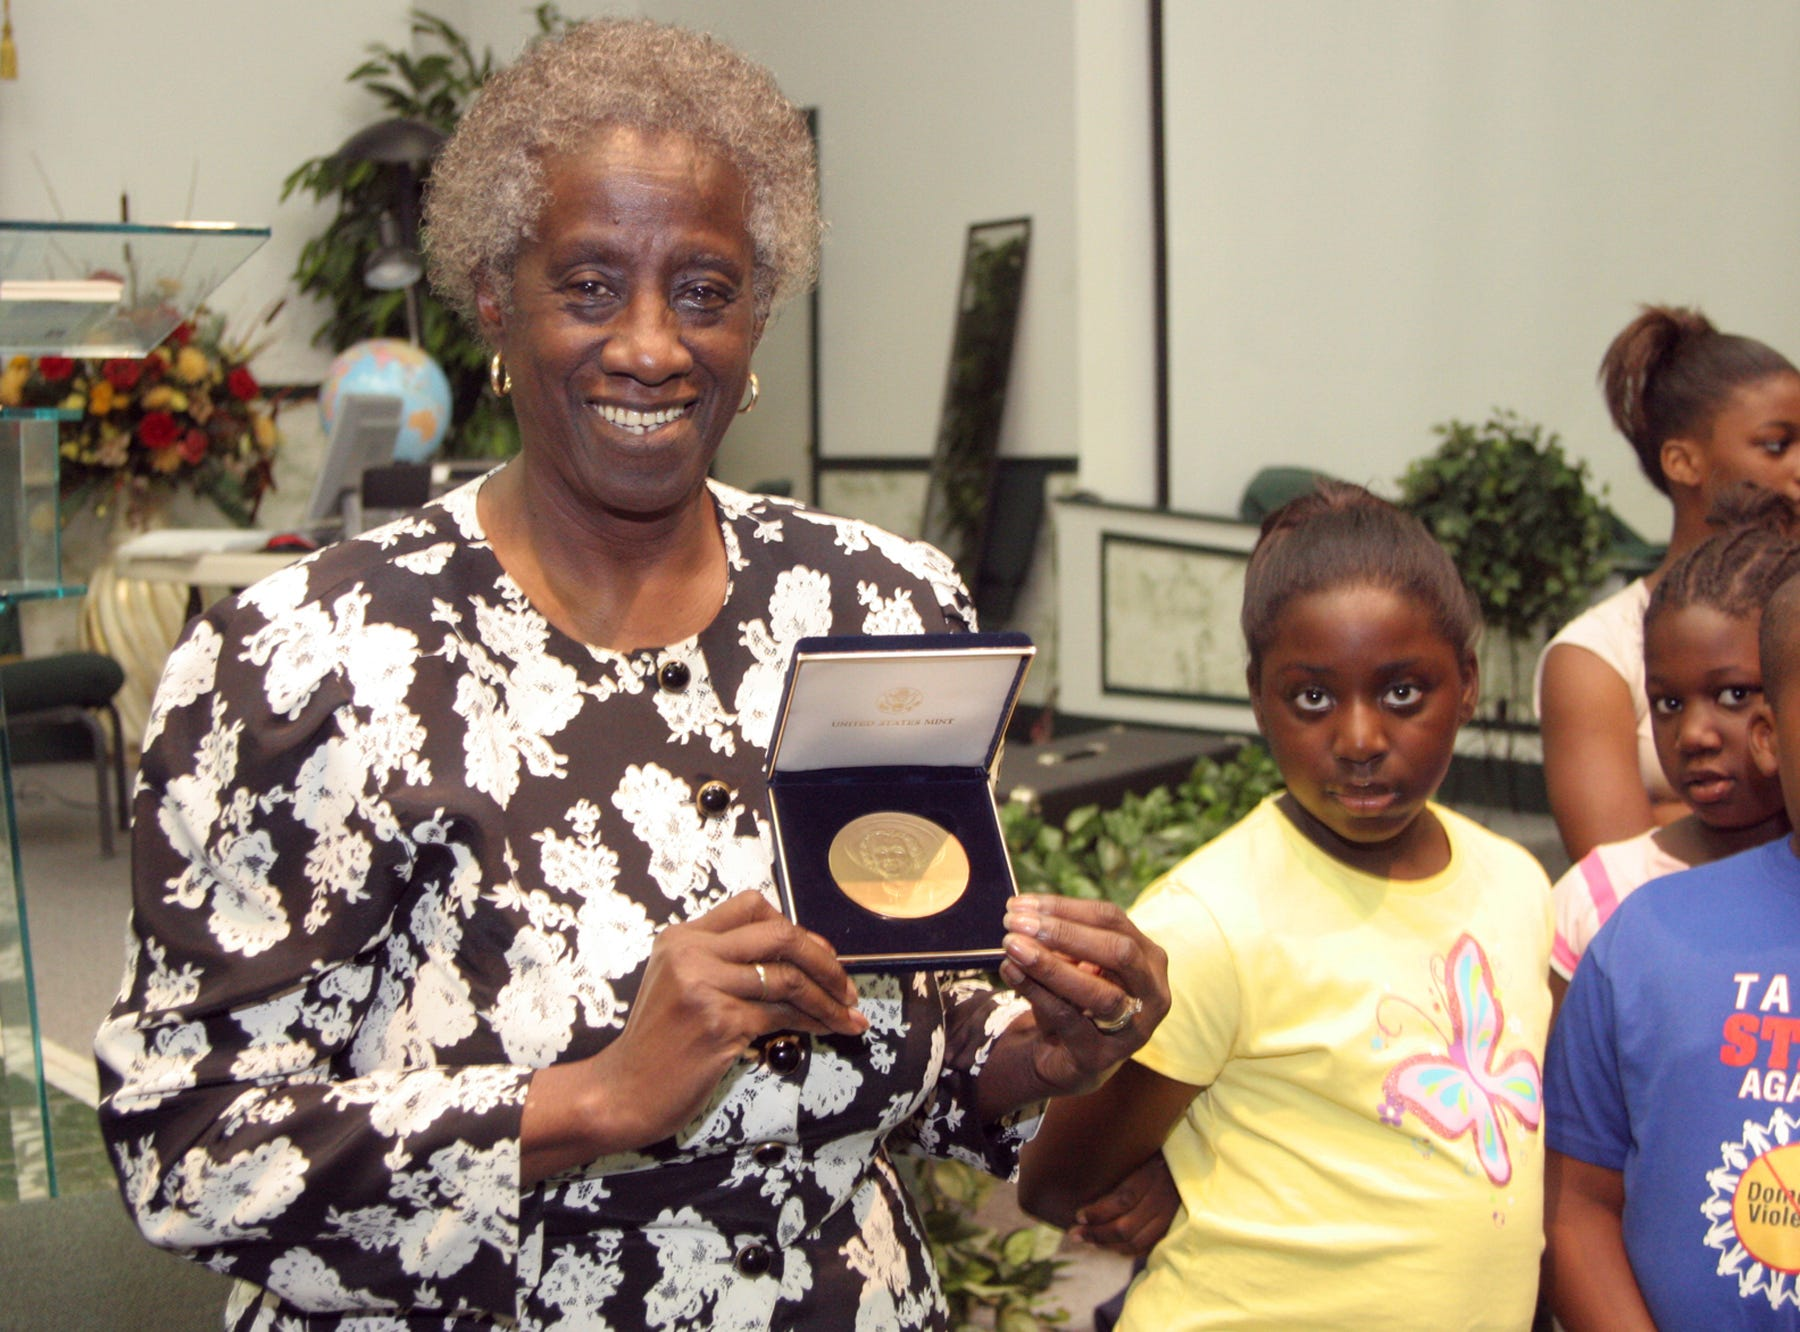 In a Tuesday, July 25, 2006 file photo, Unita Blackwell, left, the first black woman mayor in the state of Mississippi, shows an audience the gold minted coin given to her in recognition of her pioneering struggles for voters rights, in Greenville, Miss. Unita Blackwell, a civil rights activist who was the first African American woman to win a mayor's race in Mississippi , died Monday, May 13, 2019  in Ocean Springs Hospital. She was 86.